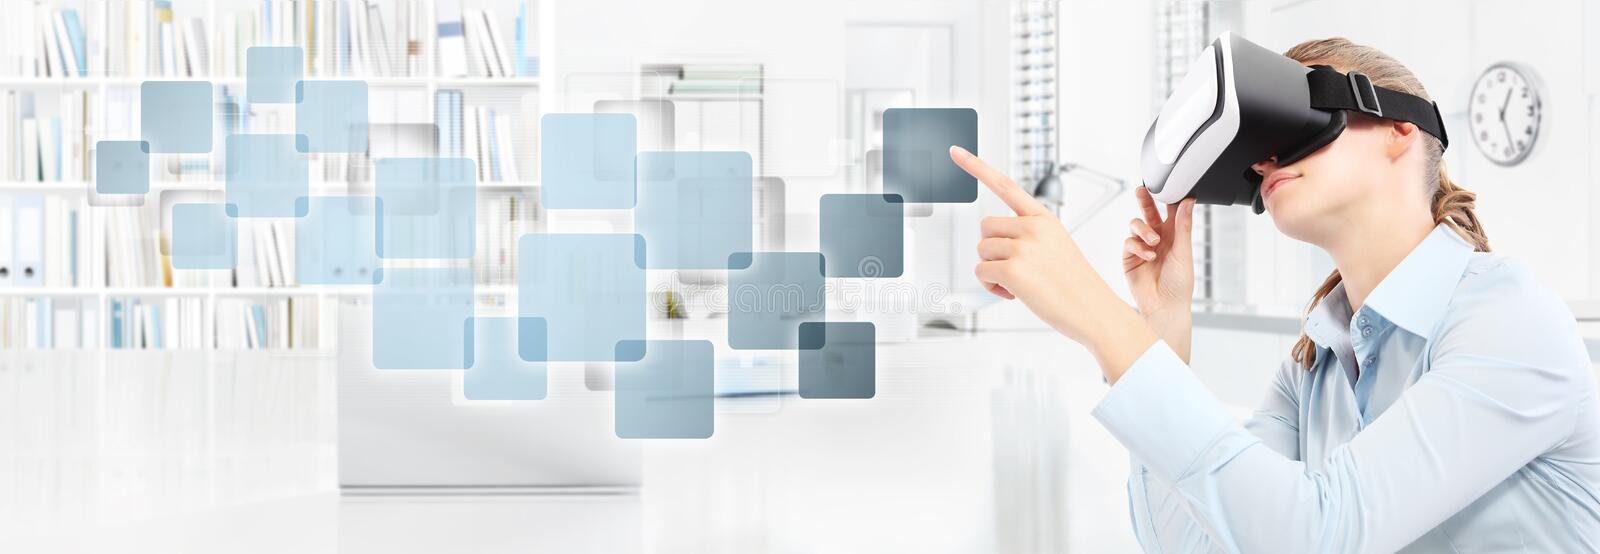 Woman wearing virtual reality glasses in office, hand pointing t royalty free stock photo